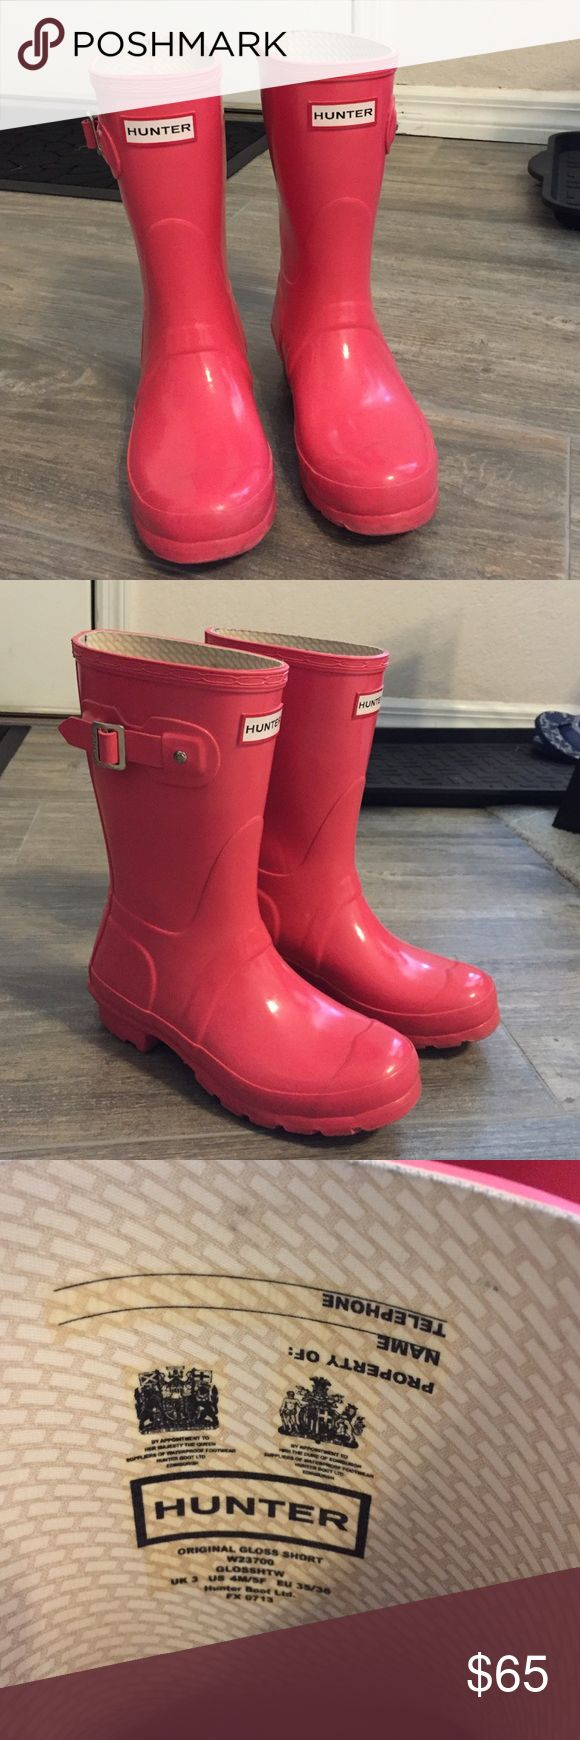 Pink Hunter Rain Boots (short) Pink hunters. A few scuff marks. Shown in pictures. Size 5f. Hunter Boots Shoes Winter & Rain Boots